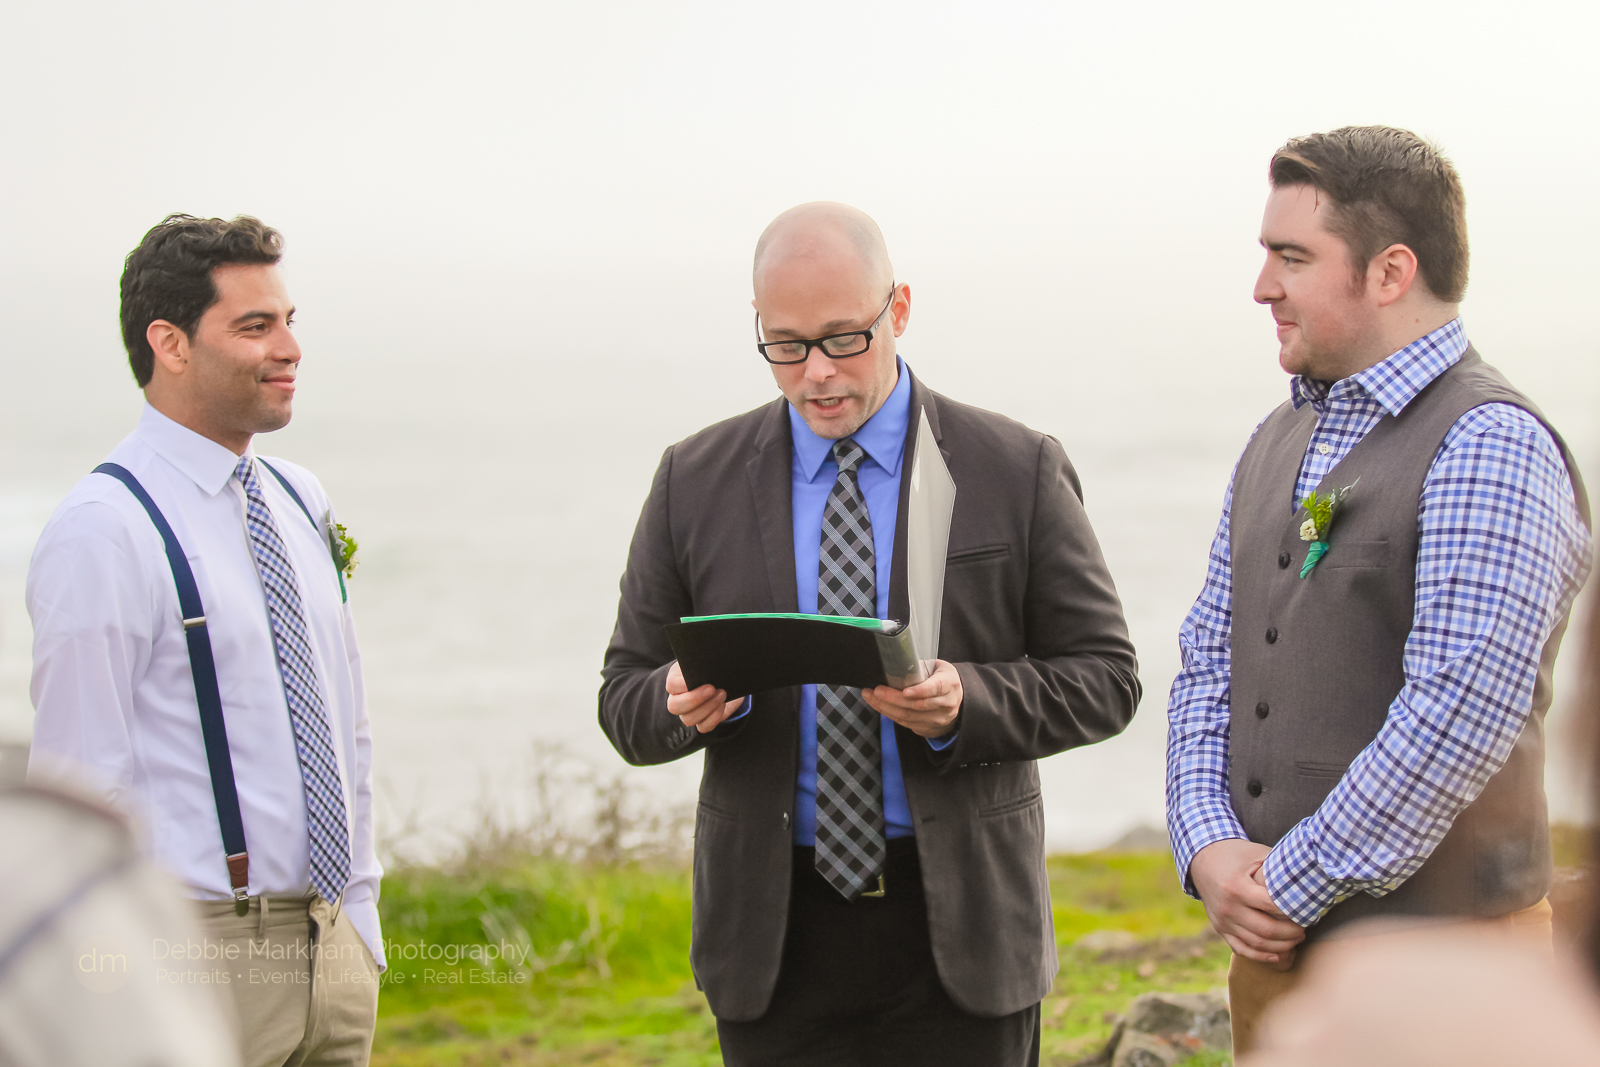 A+R_Gay Wedding_Portraits_Married_Cambria_Robin's_California_Coast__Photographer-18